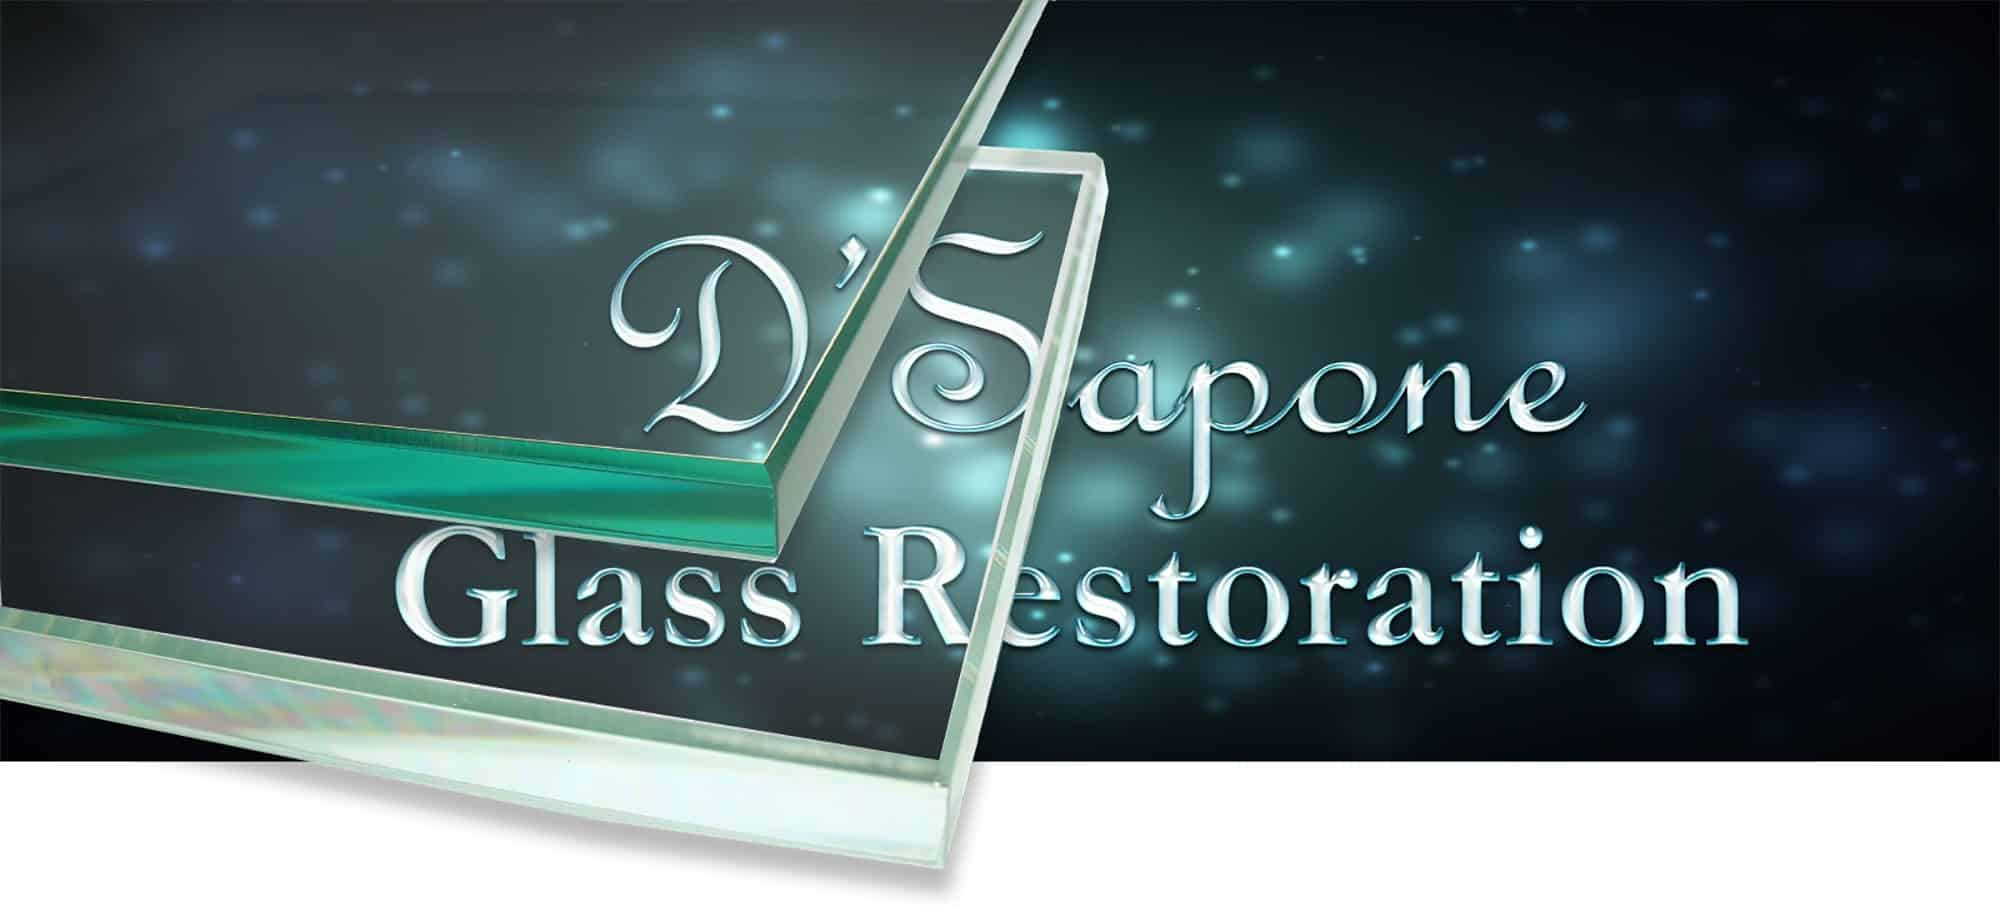 Glass Restoration